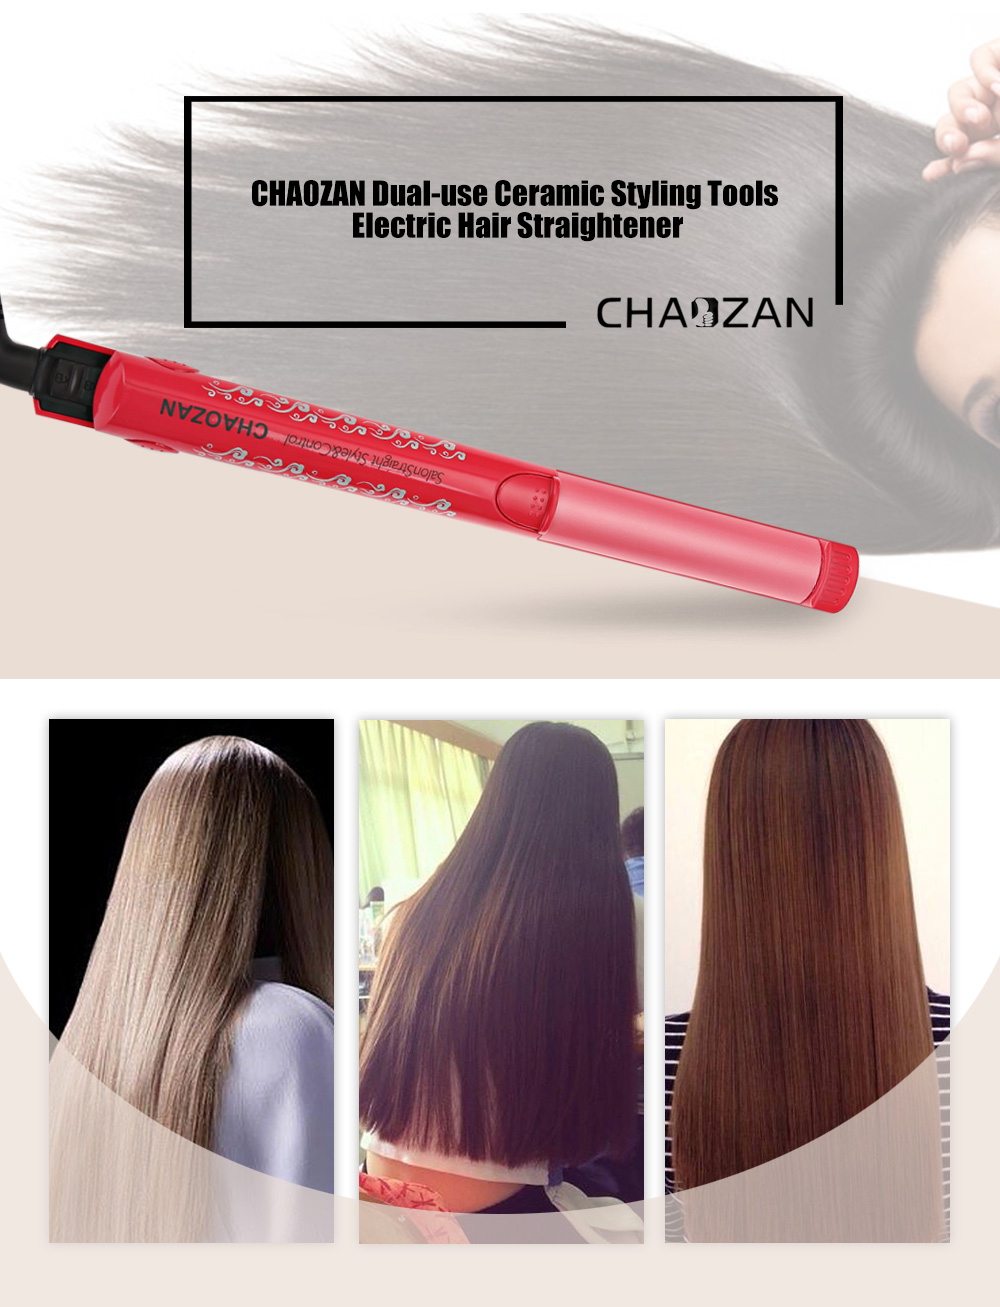 CHAOZAN 2 in 1 Ceramic Coating Styling Tools Electric Hair Straightener